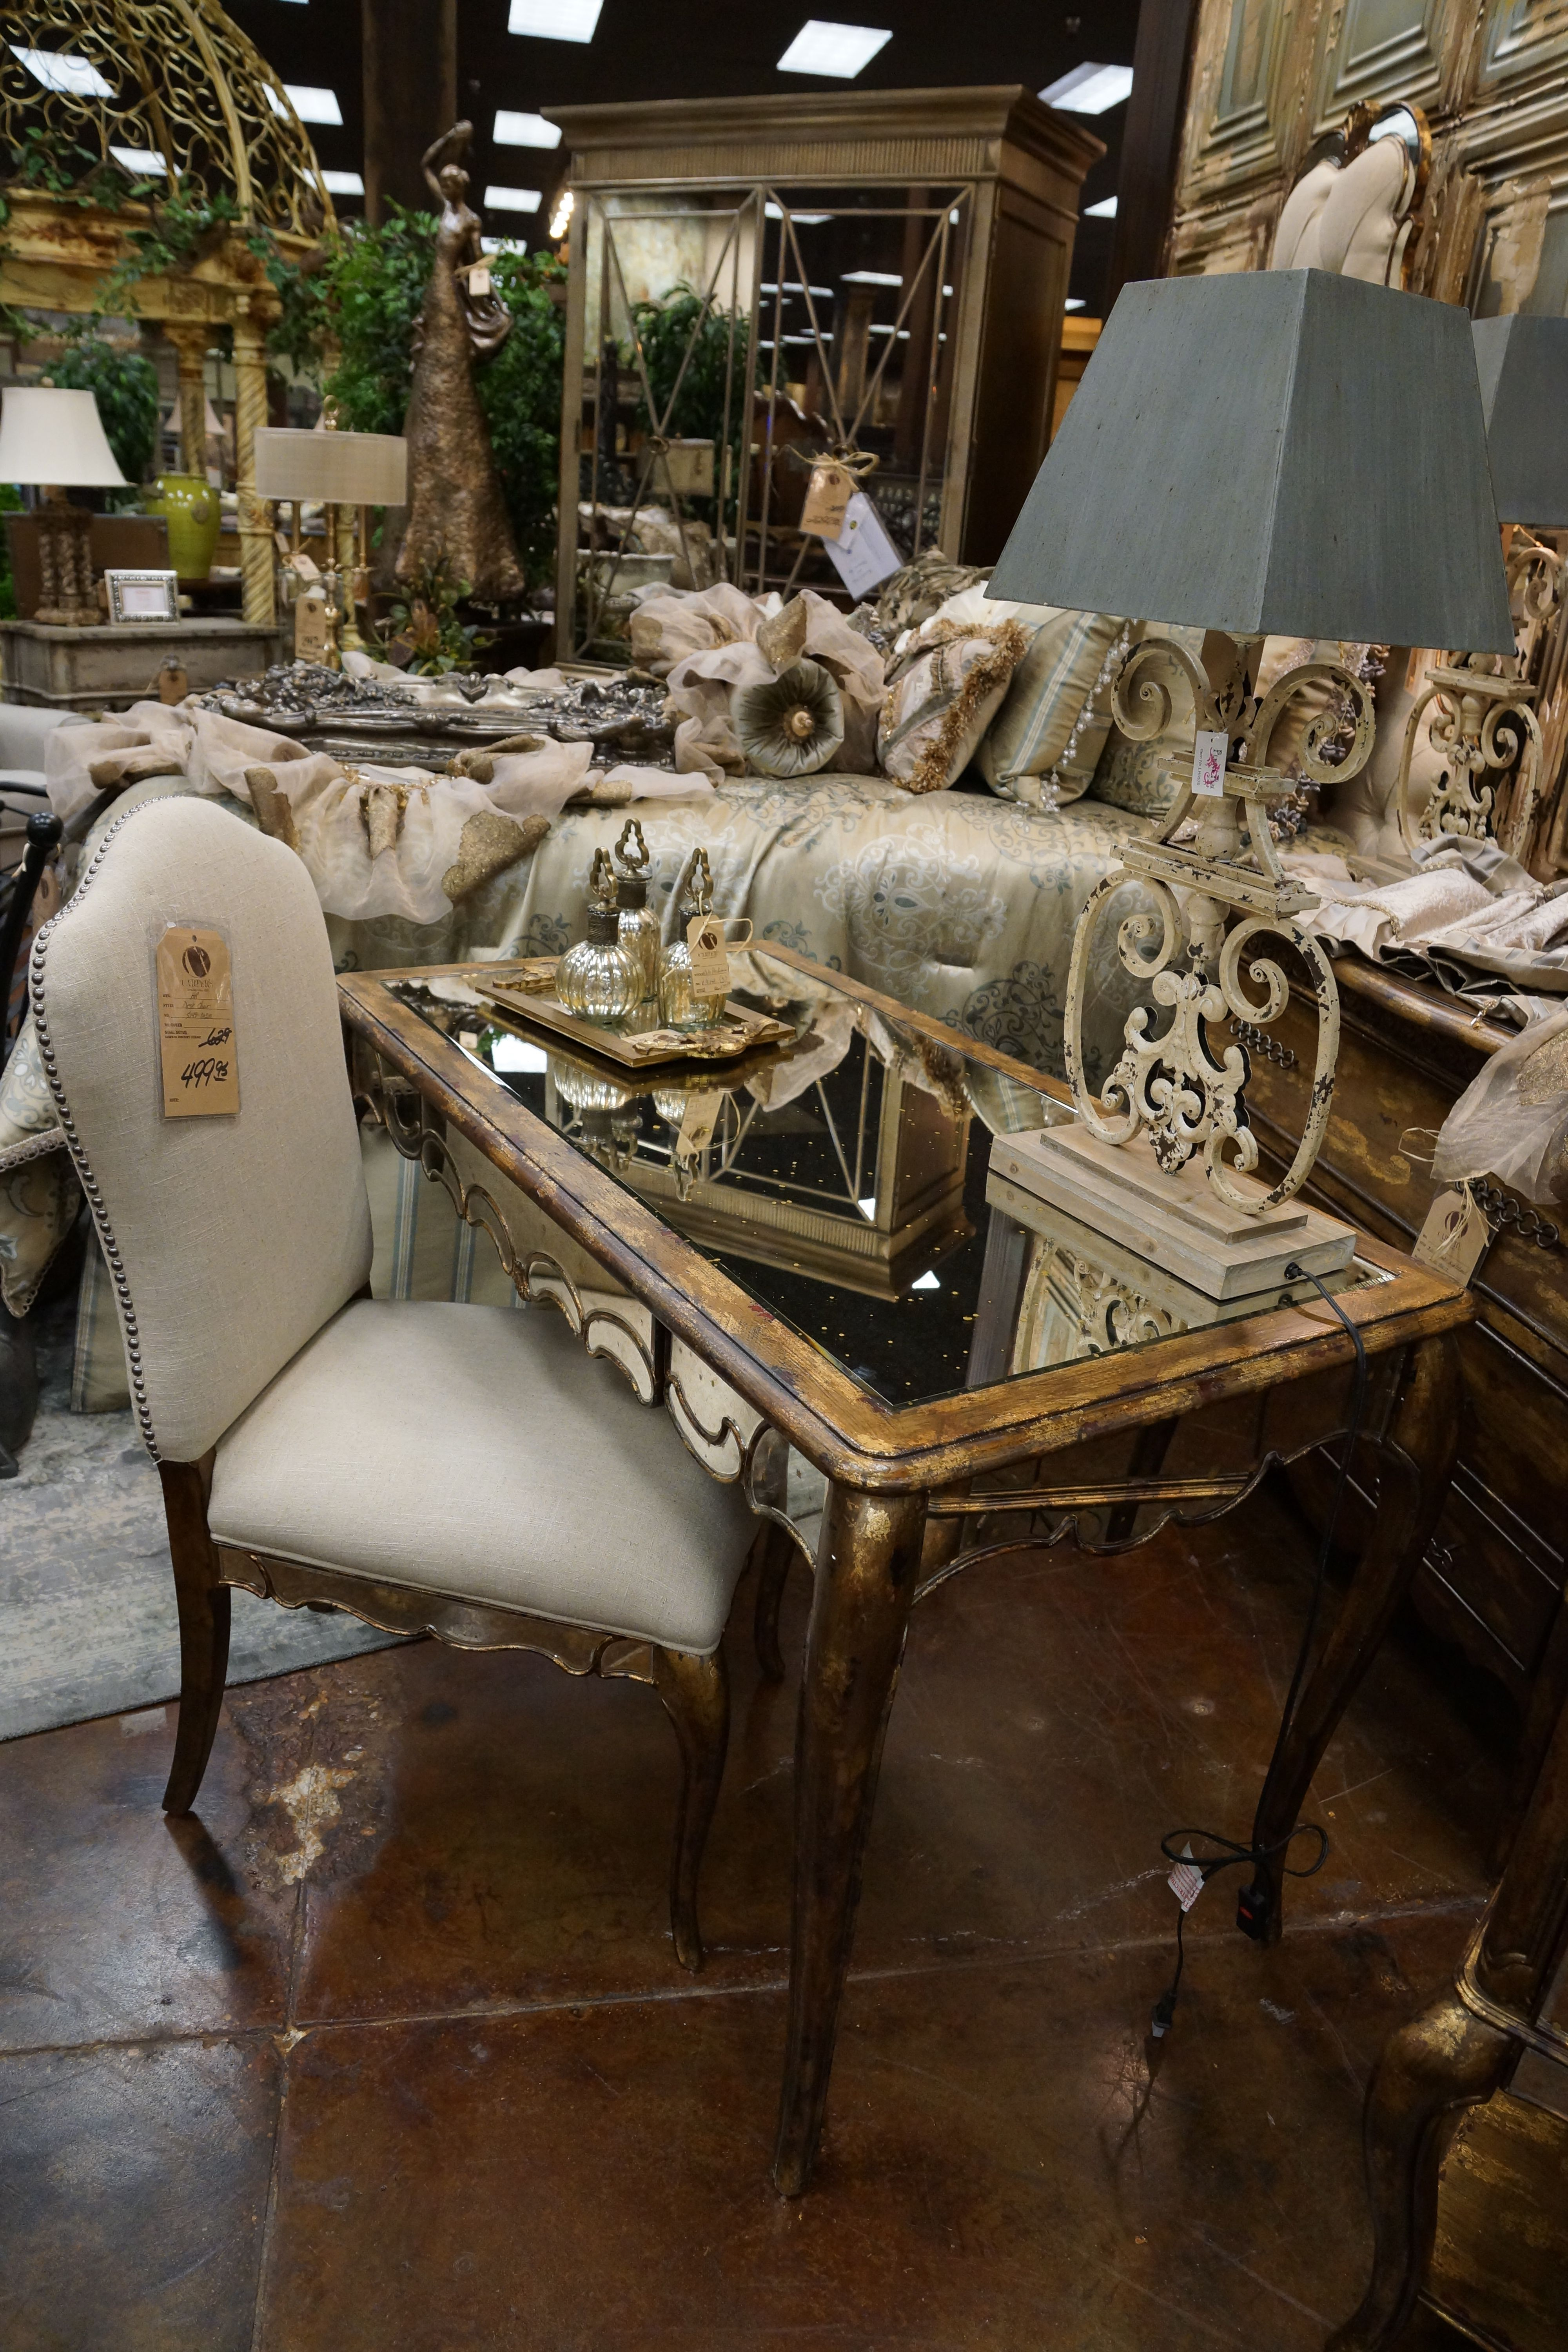 Captivating Available At Carteru0027s Furniture, Midland, Texas 432 682 2843 Http:/